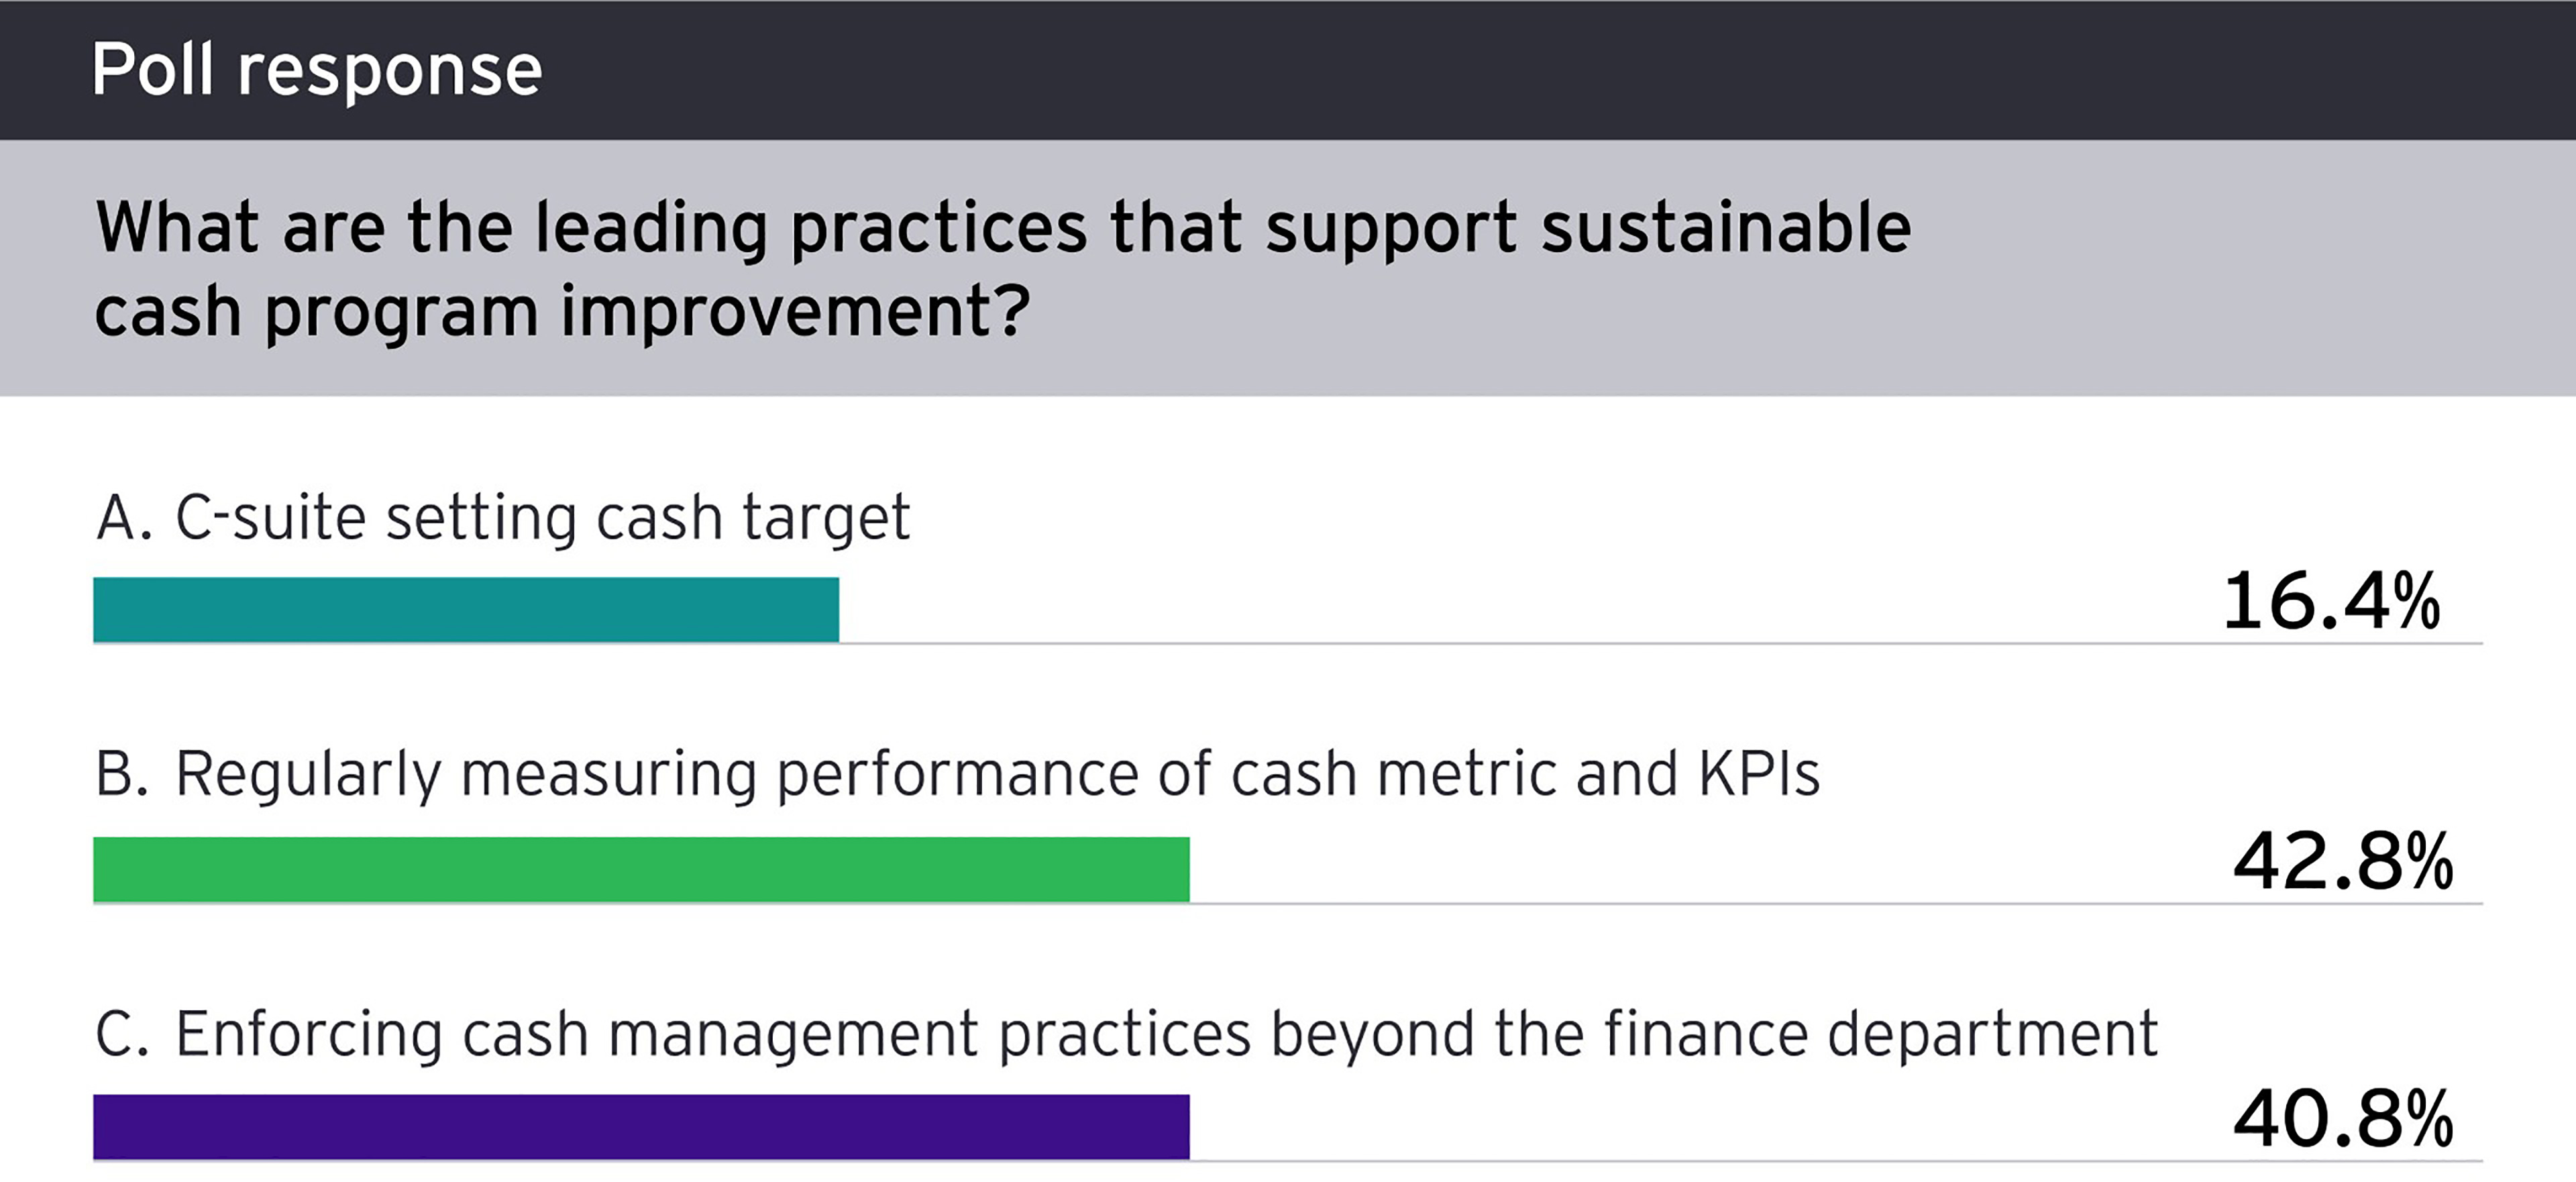 EY - Sustainable cash program improvement